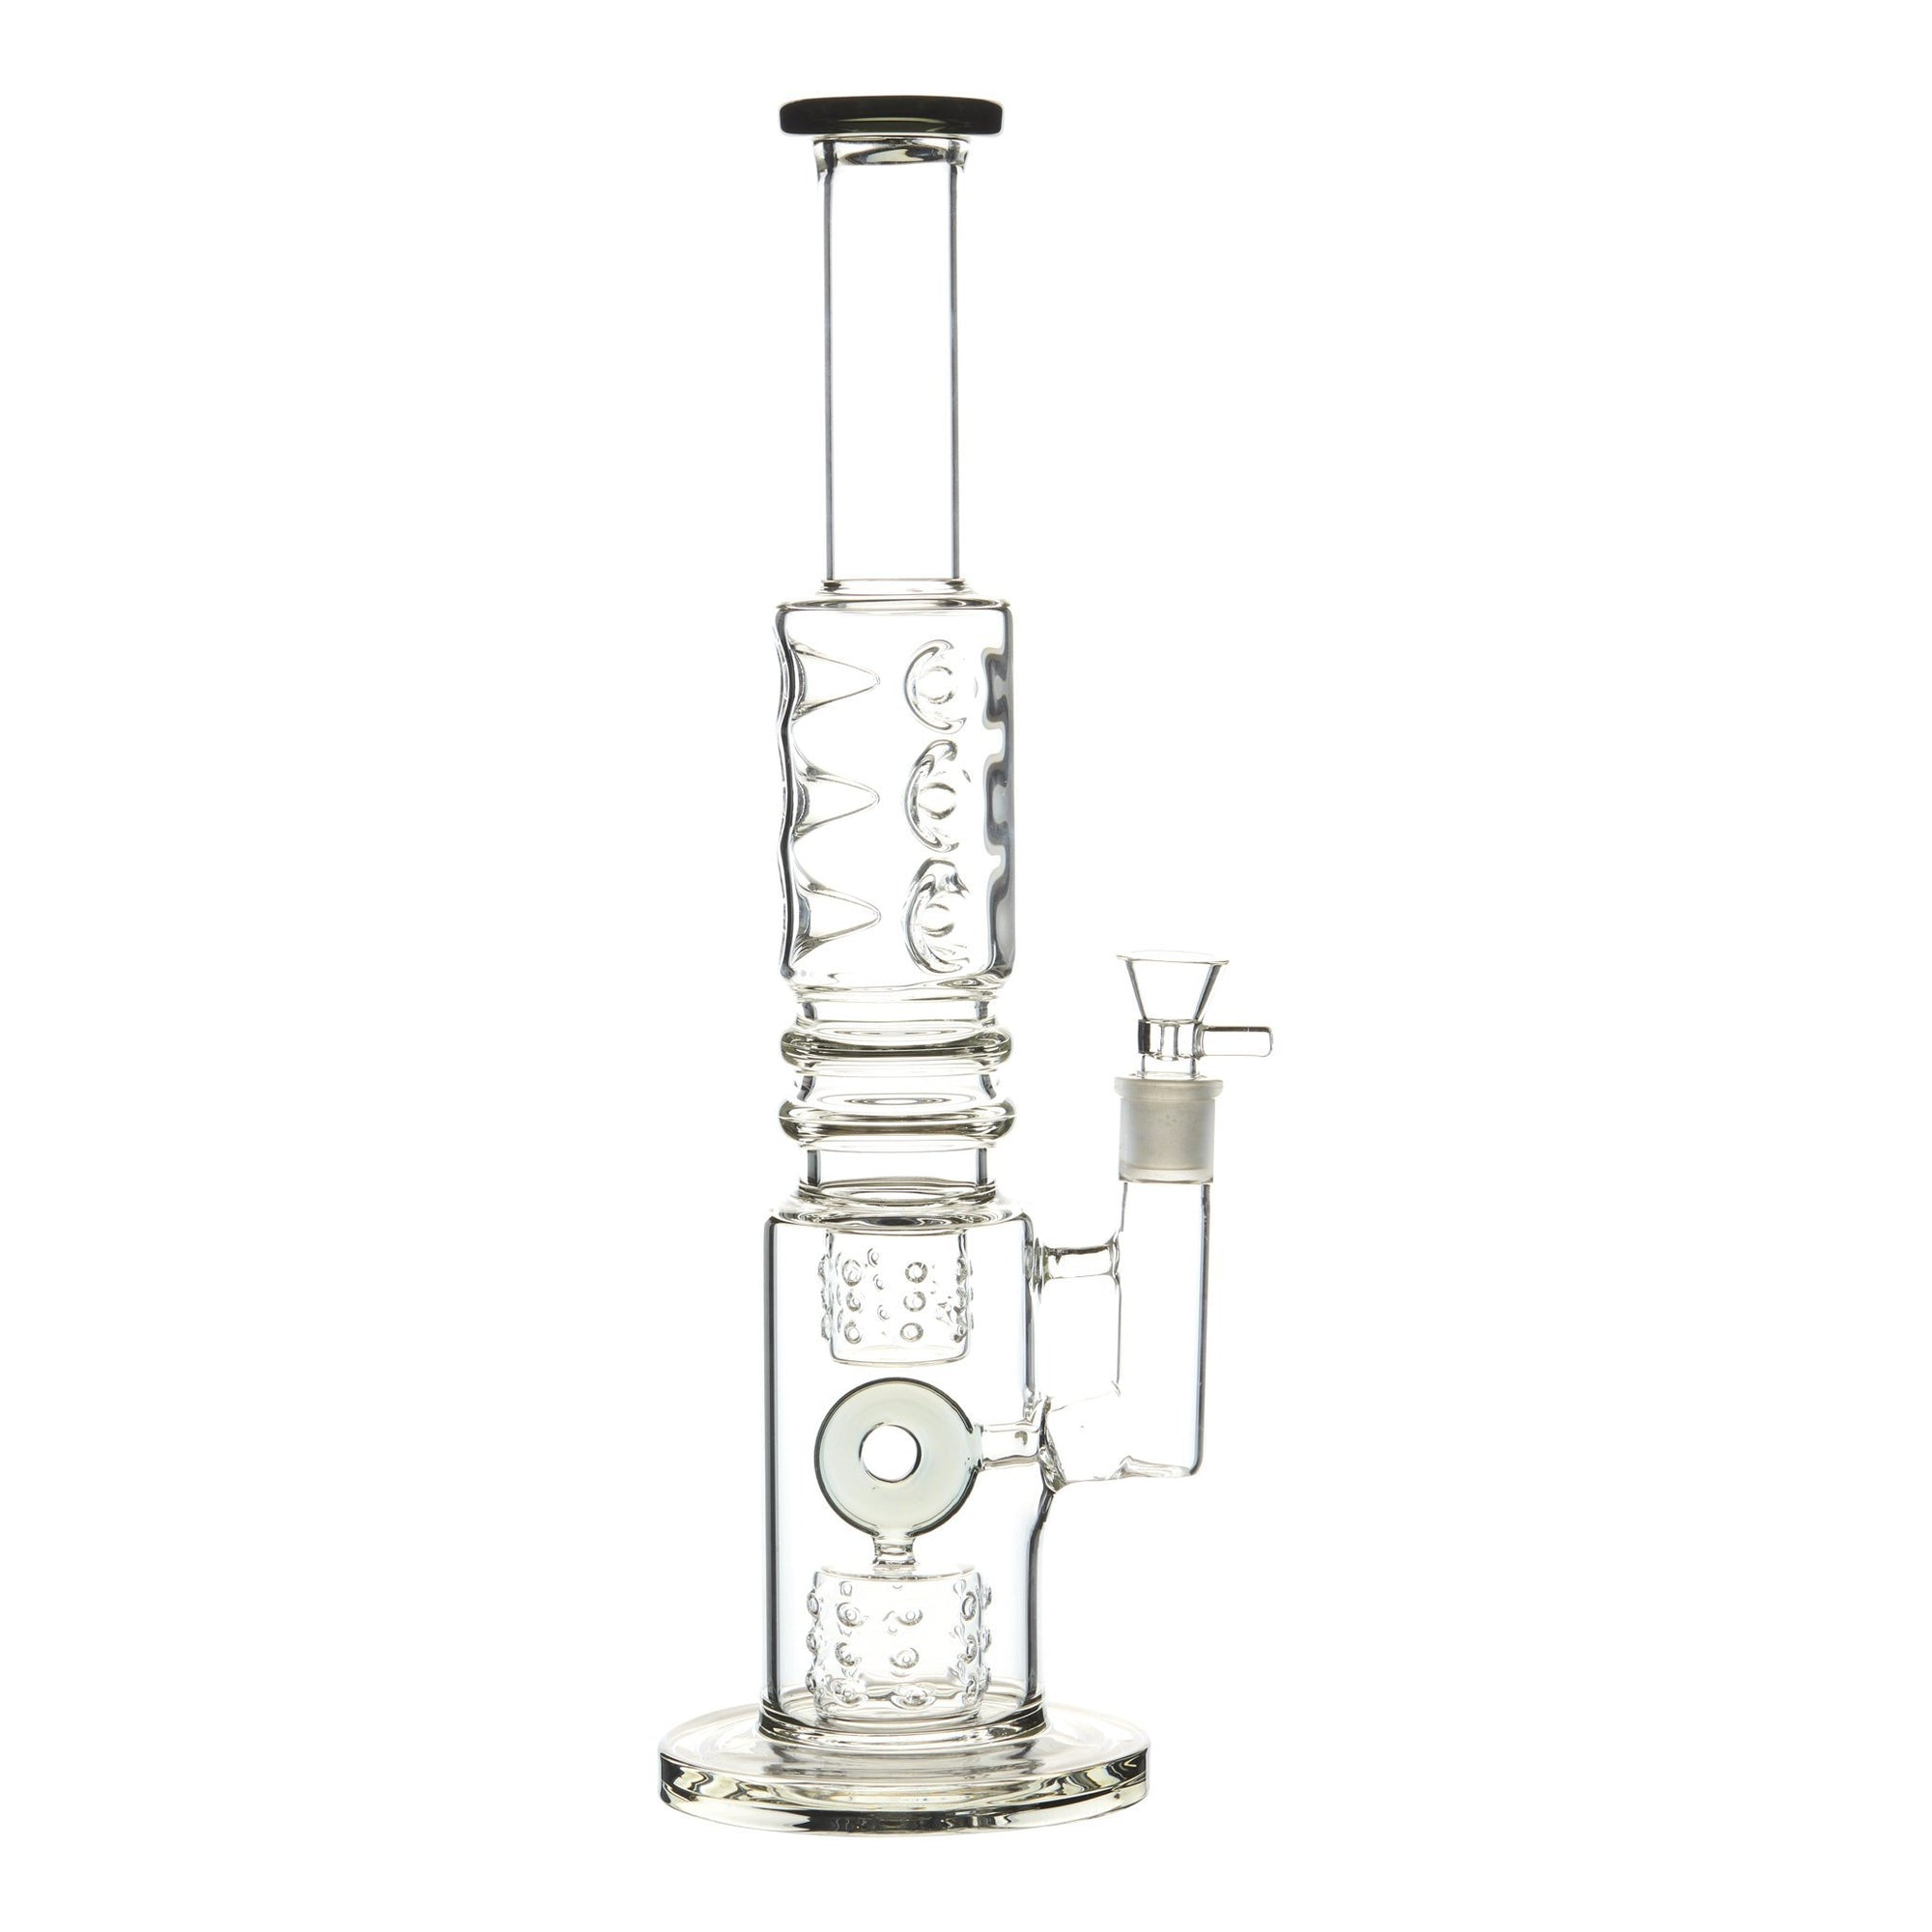 Grey 15-inch glass bong smoking device donut downstem colorful accents sleek and classic look sturdy base